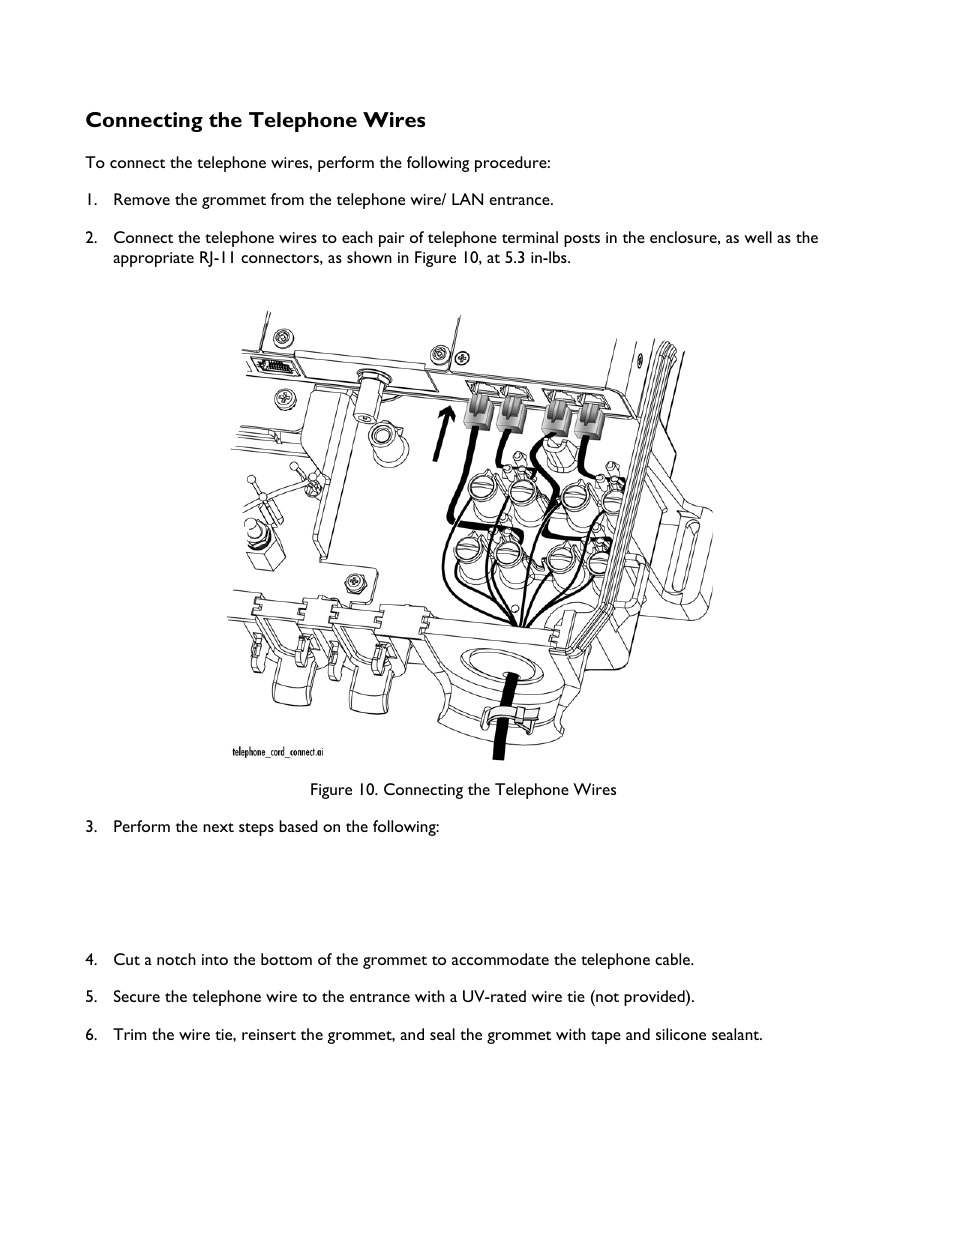 Unique Allied Wire Cable Gift - Electrical Diagram Ideas - piotomar.info